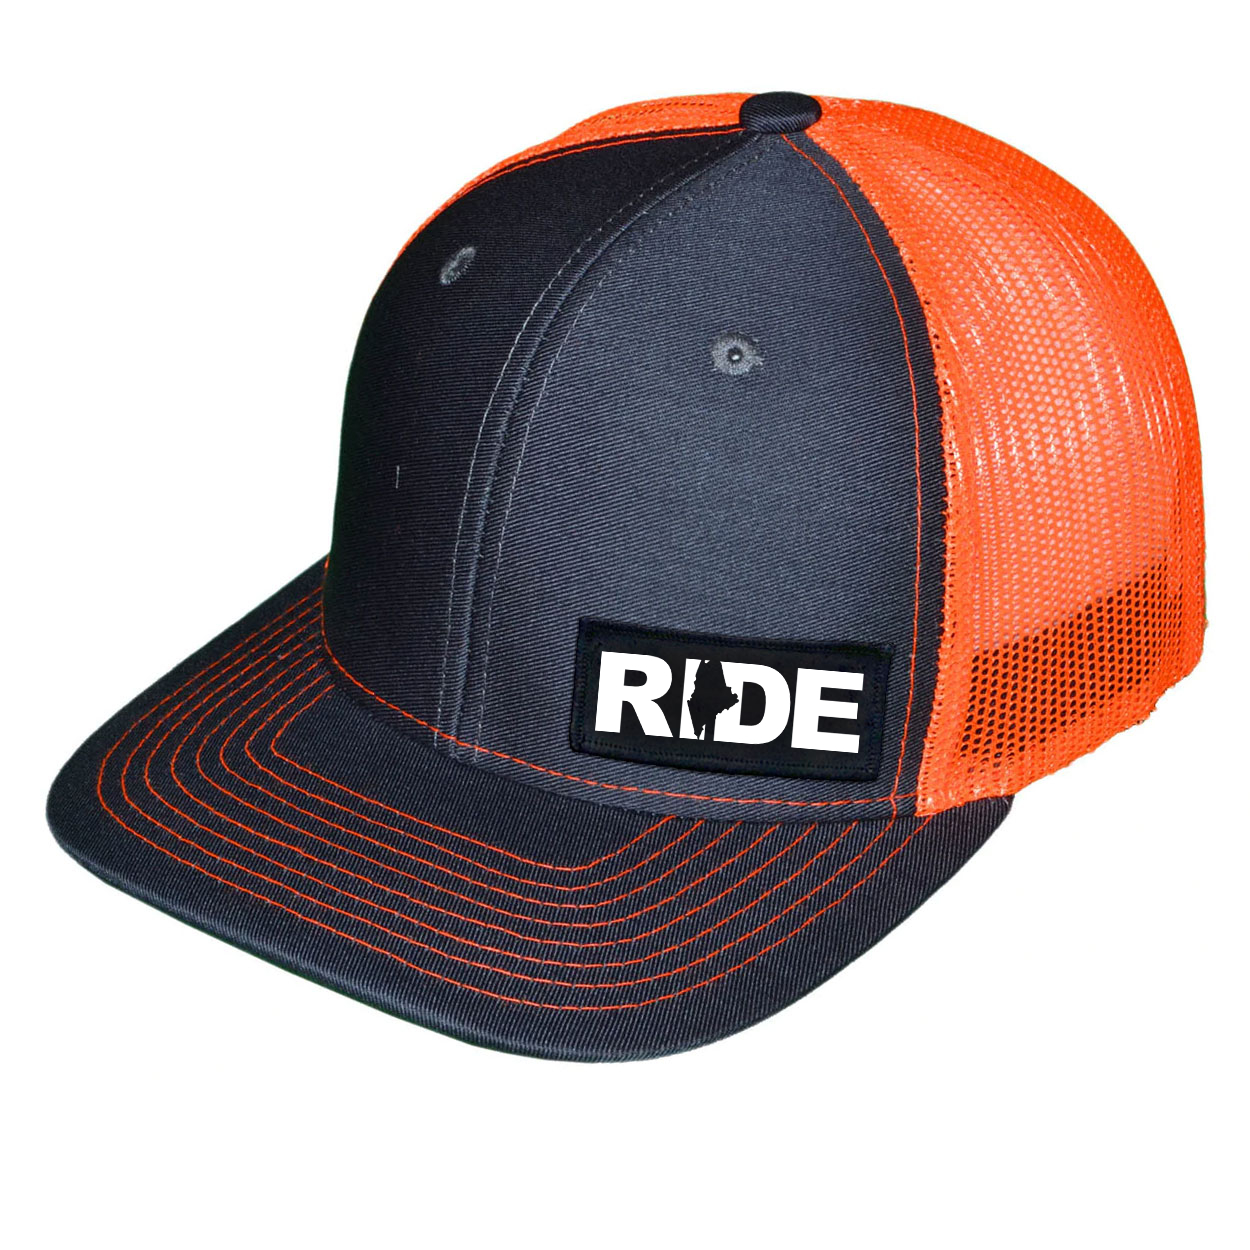 Ride Maine Night Out Woven Patch Snapback Trucker Hat Dark Gray/Orange (White Logo)